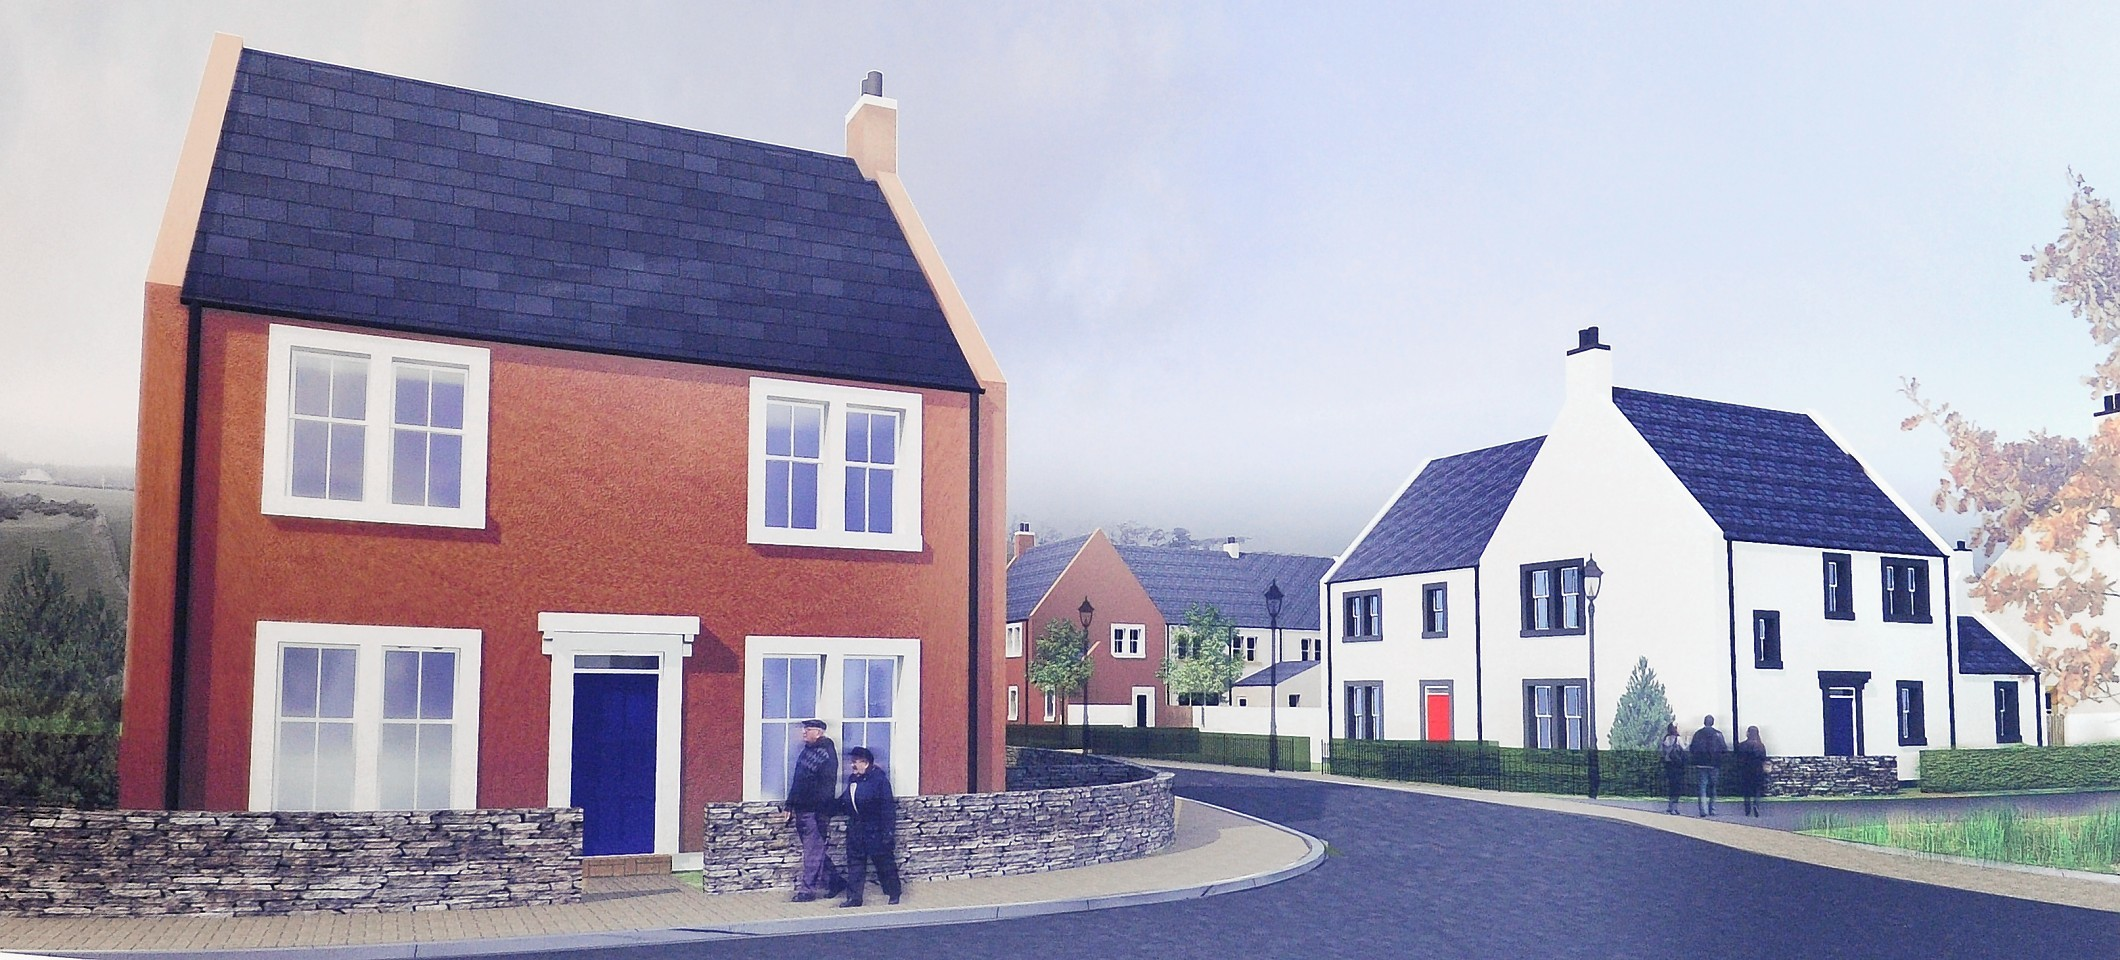 Artists impressions of the proposed development.